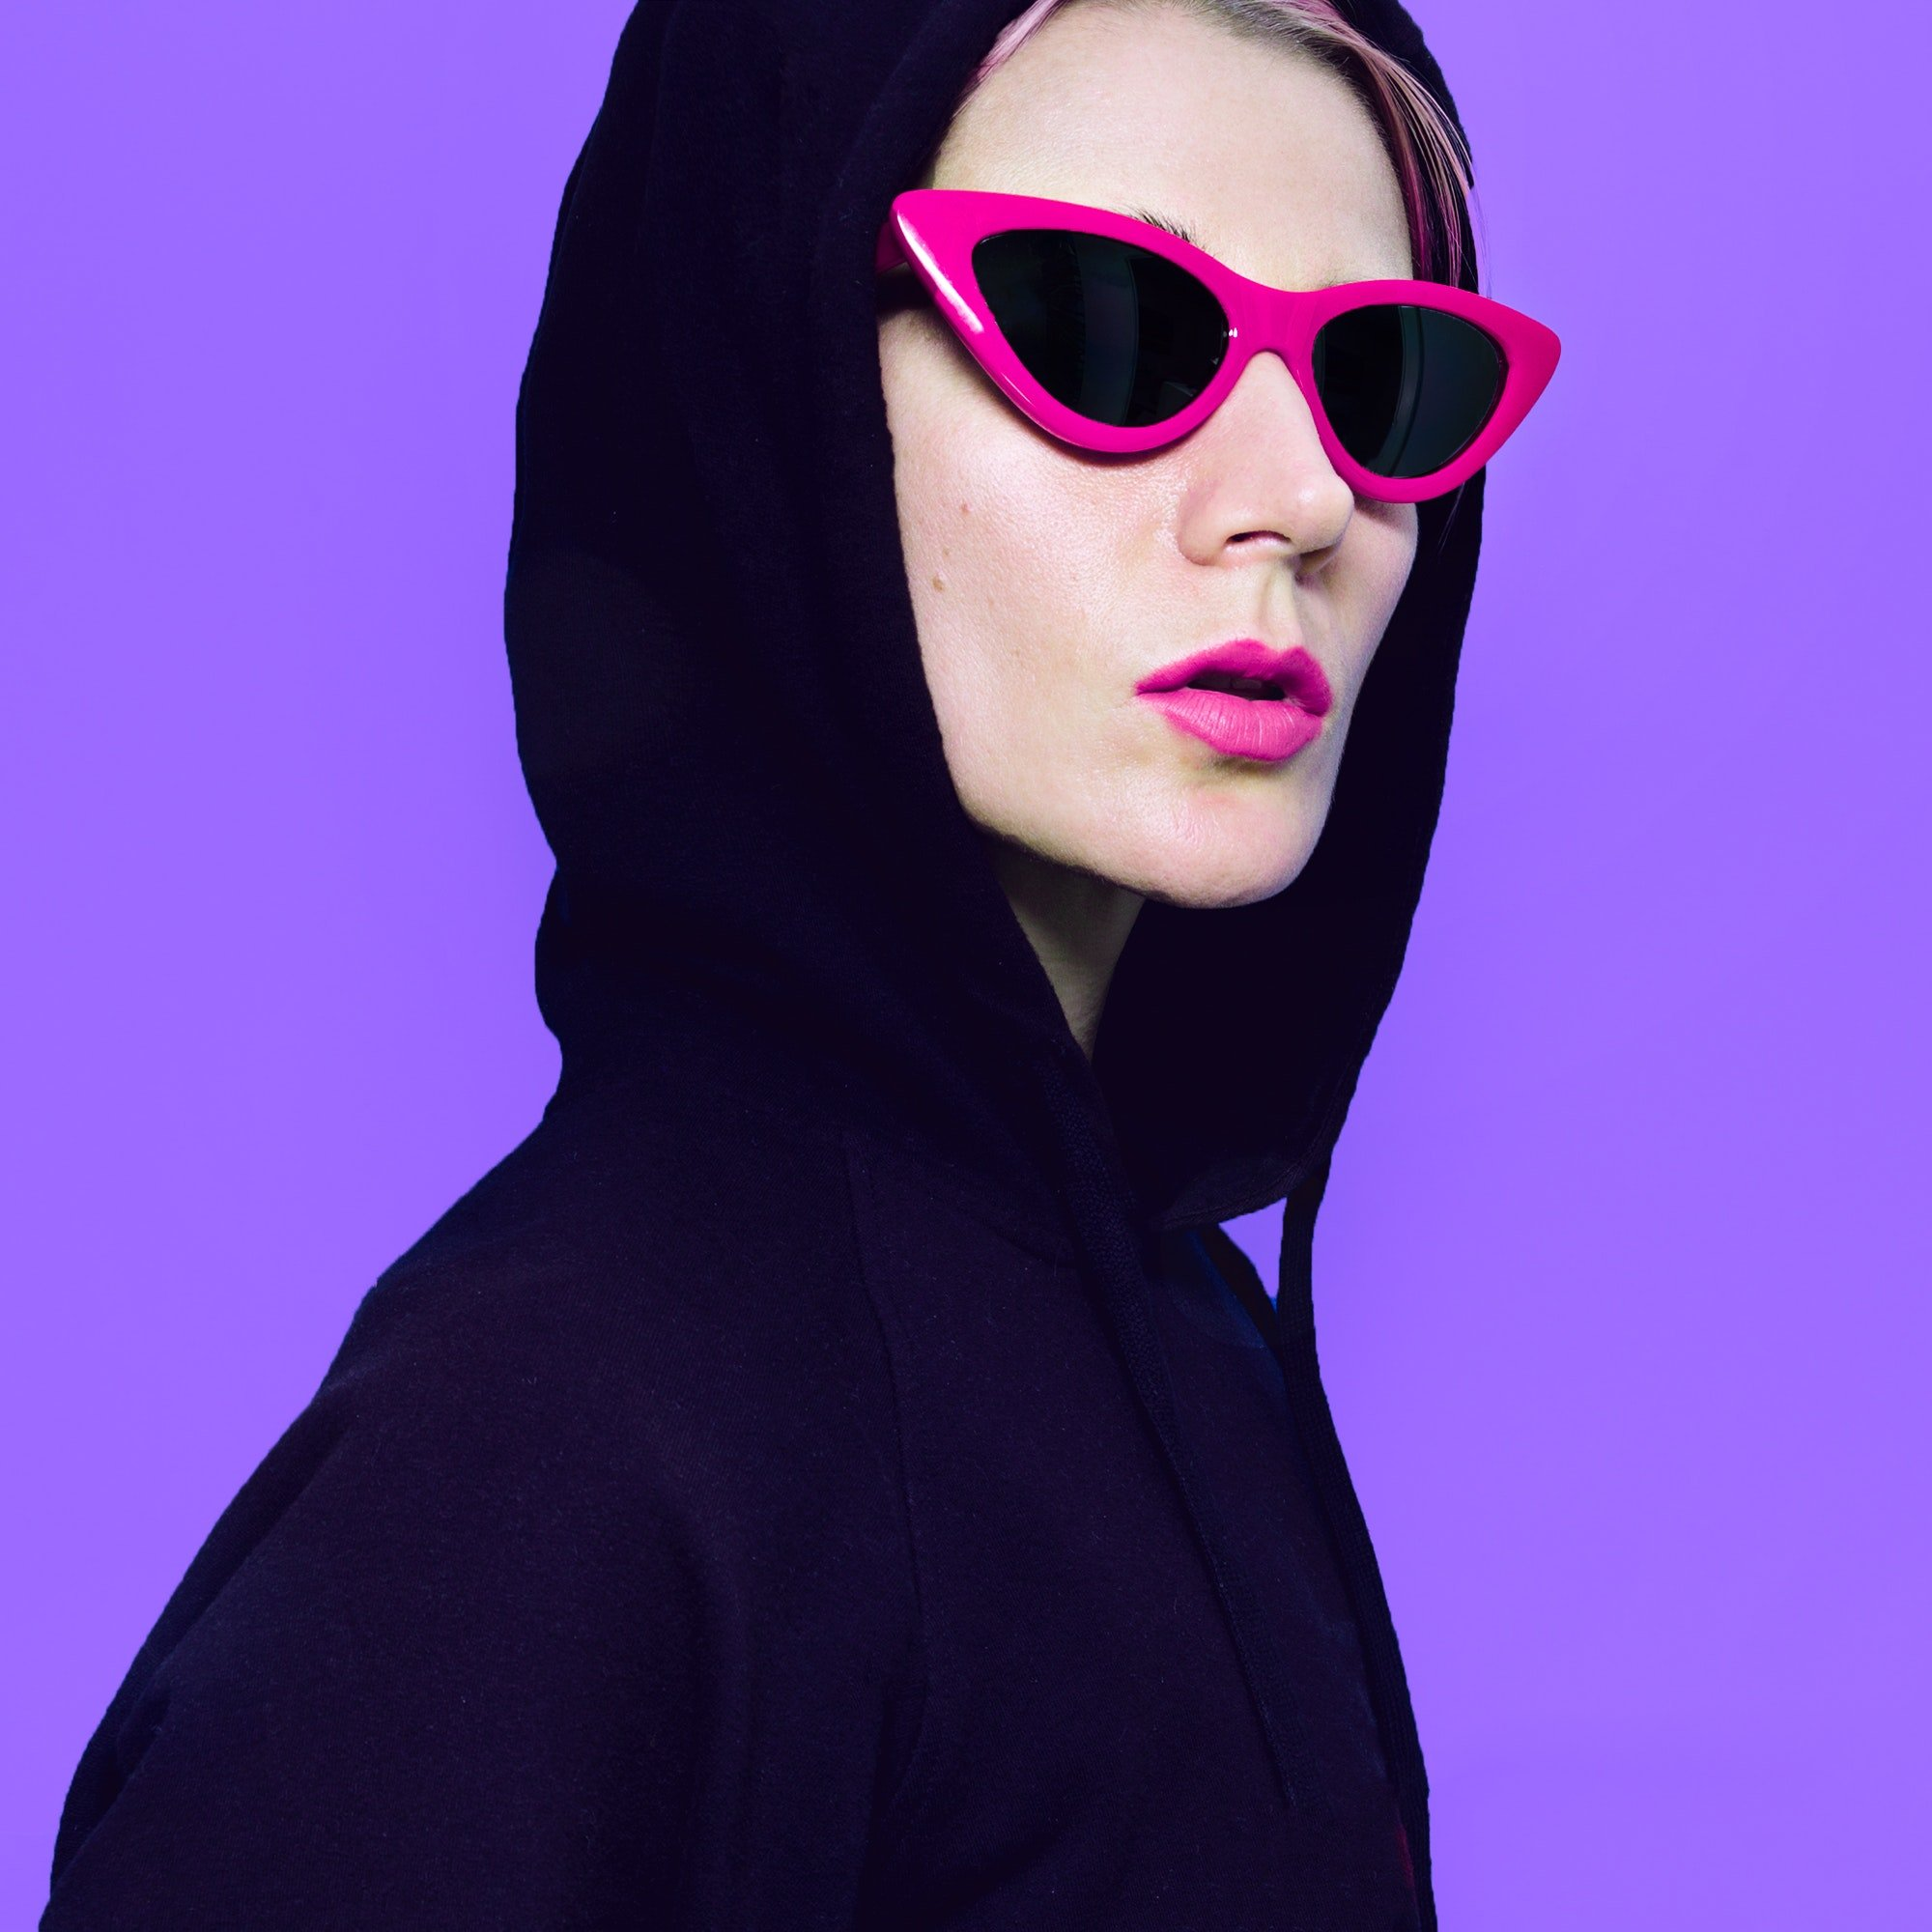 blonde-girl-in-fashion-sunglasses-and-hoody-urban-street-outfit.jpg